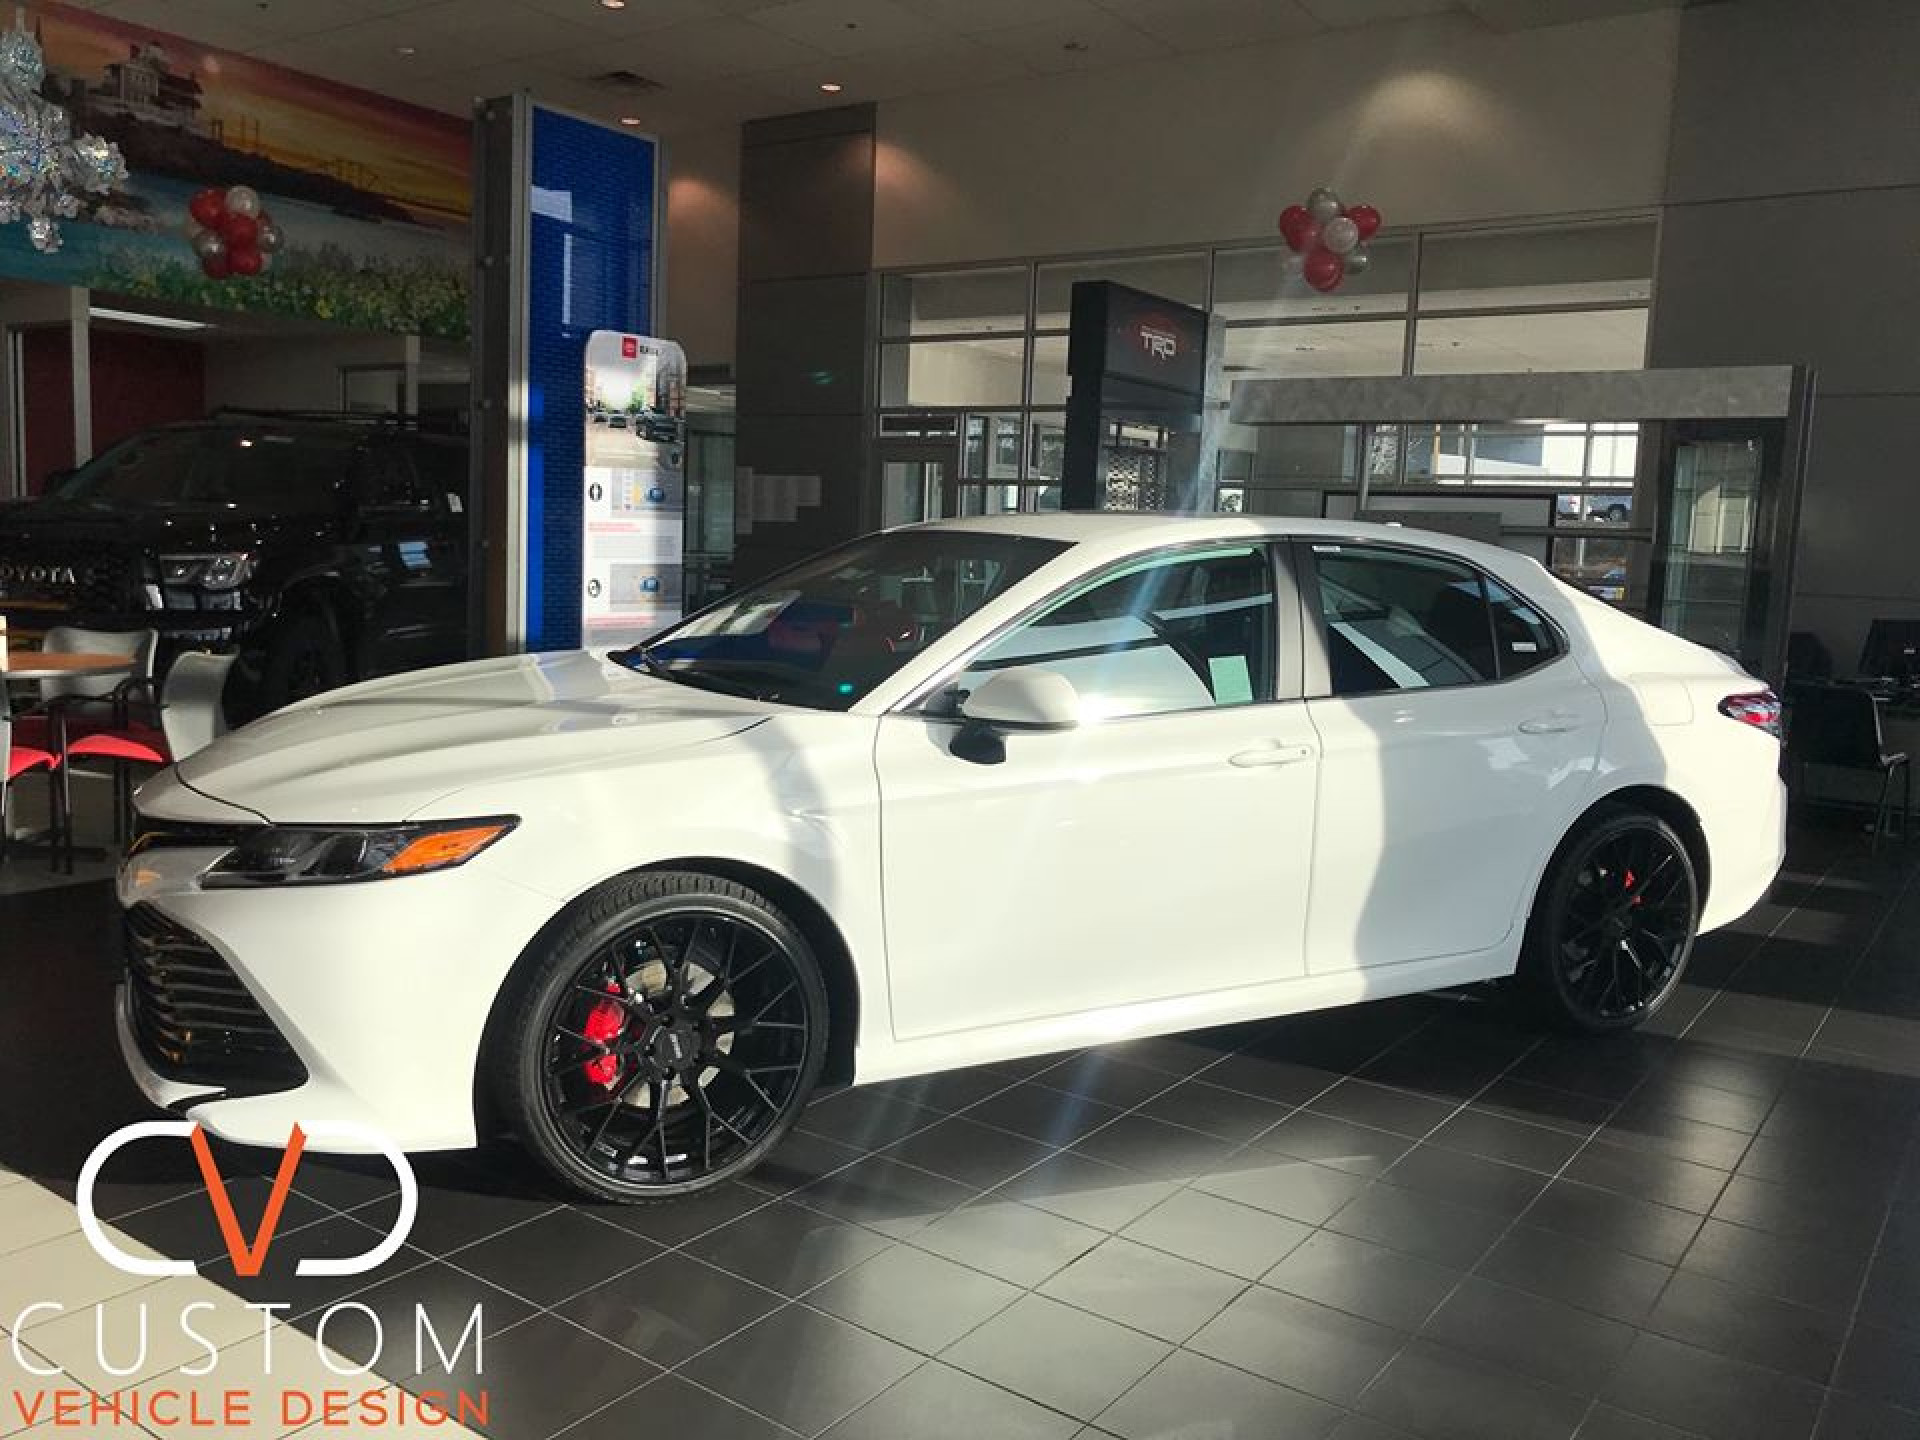 2020 Toyota Camry with the CVD package and custom lock box